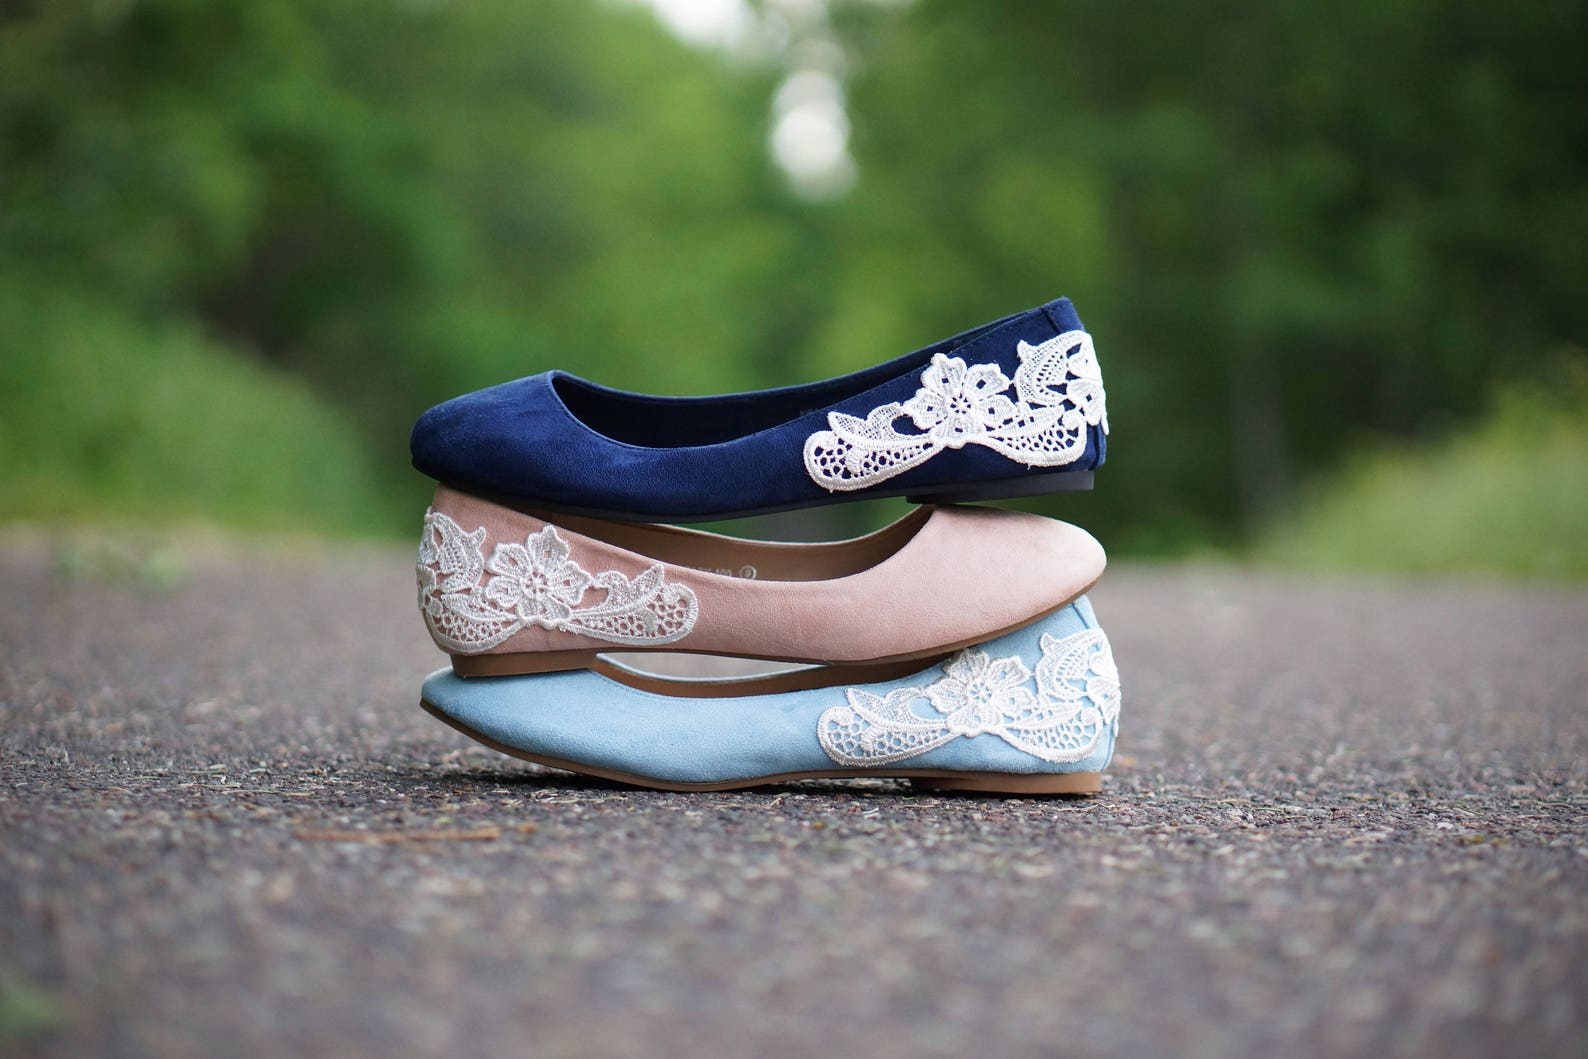 navy blue bridal ballet flats,wedding shoes,low wedding shoes,navy wedding flats,navy flats,bridal shoes,gift,blue flats with iv